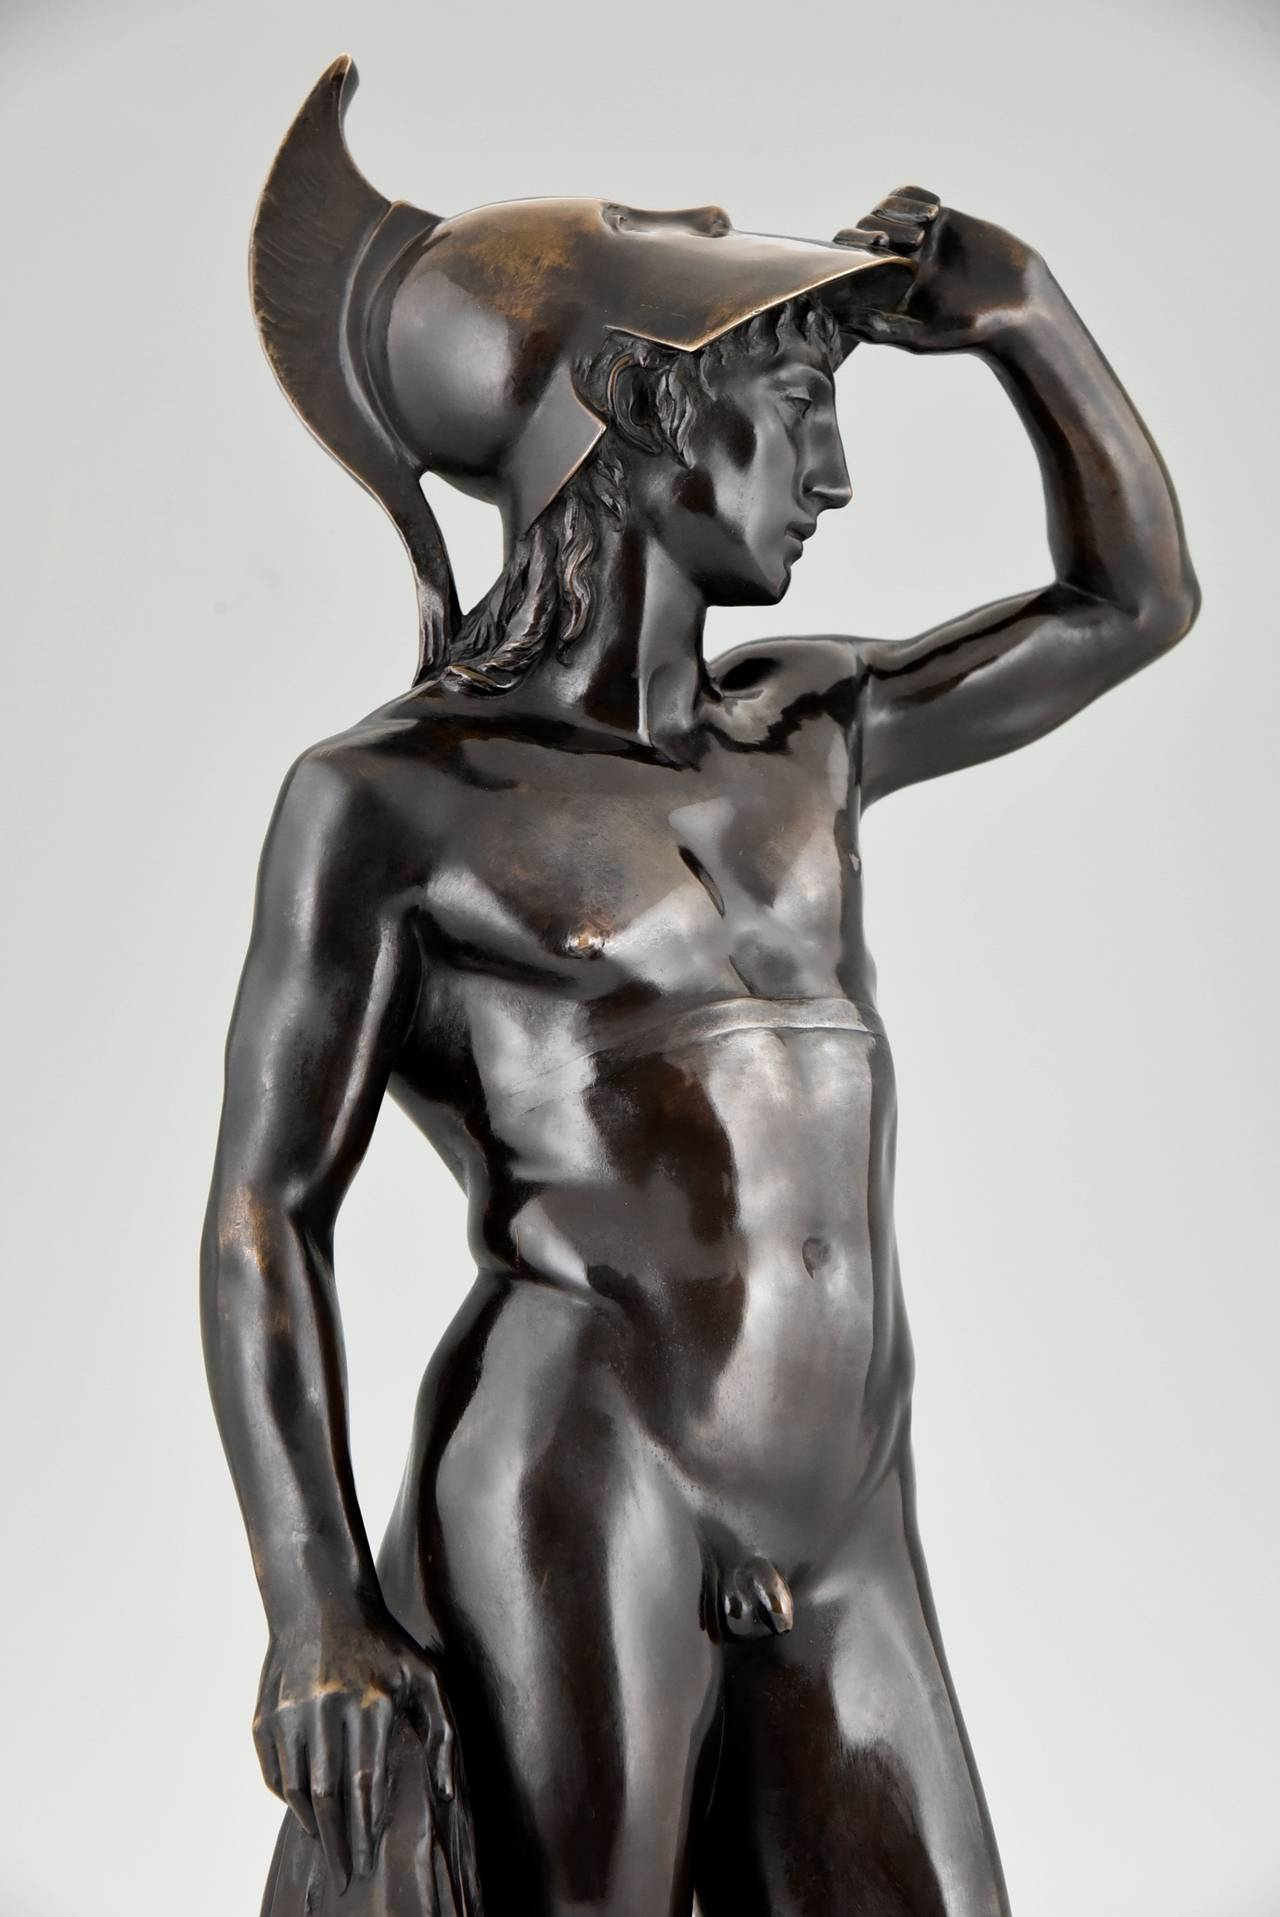 Antique Bronze Sculpture of a Male Nude by Alfred Raum, Rome, 1903 In Good Condition For Sale In Antwerp, BE